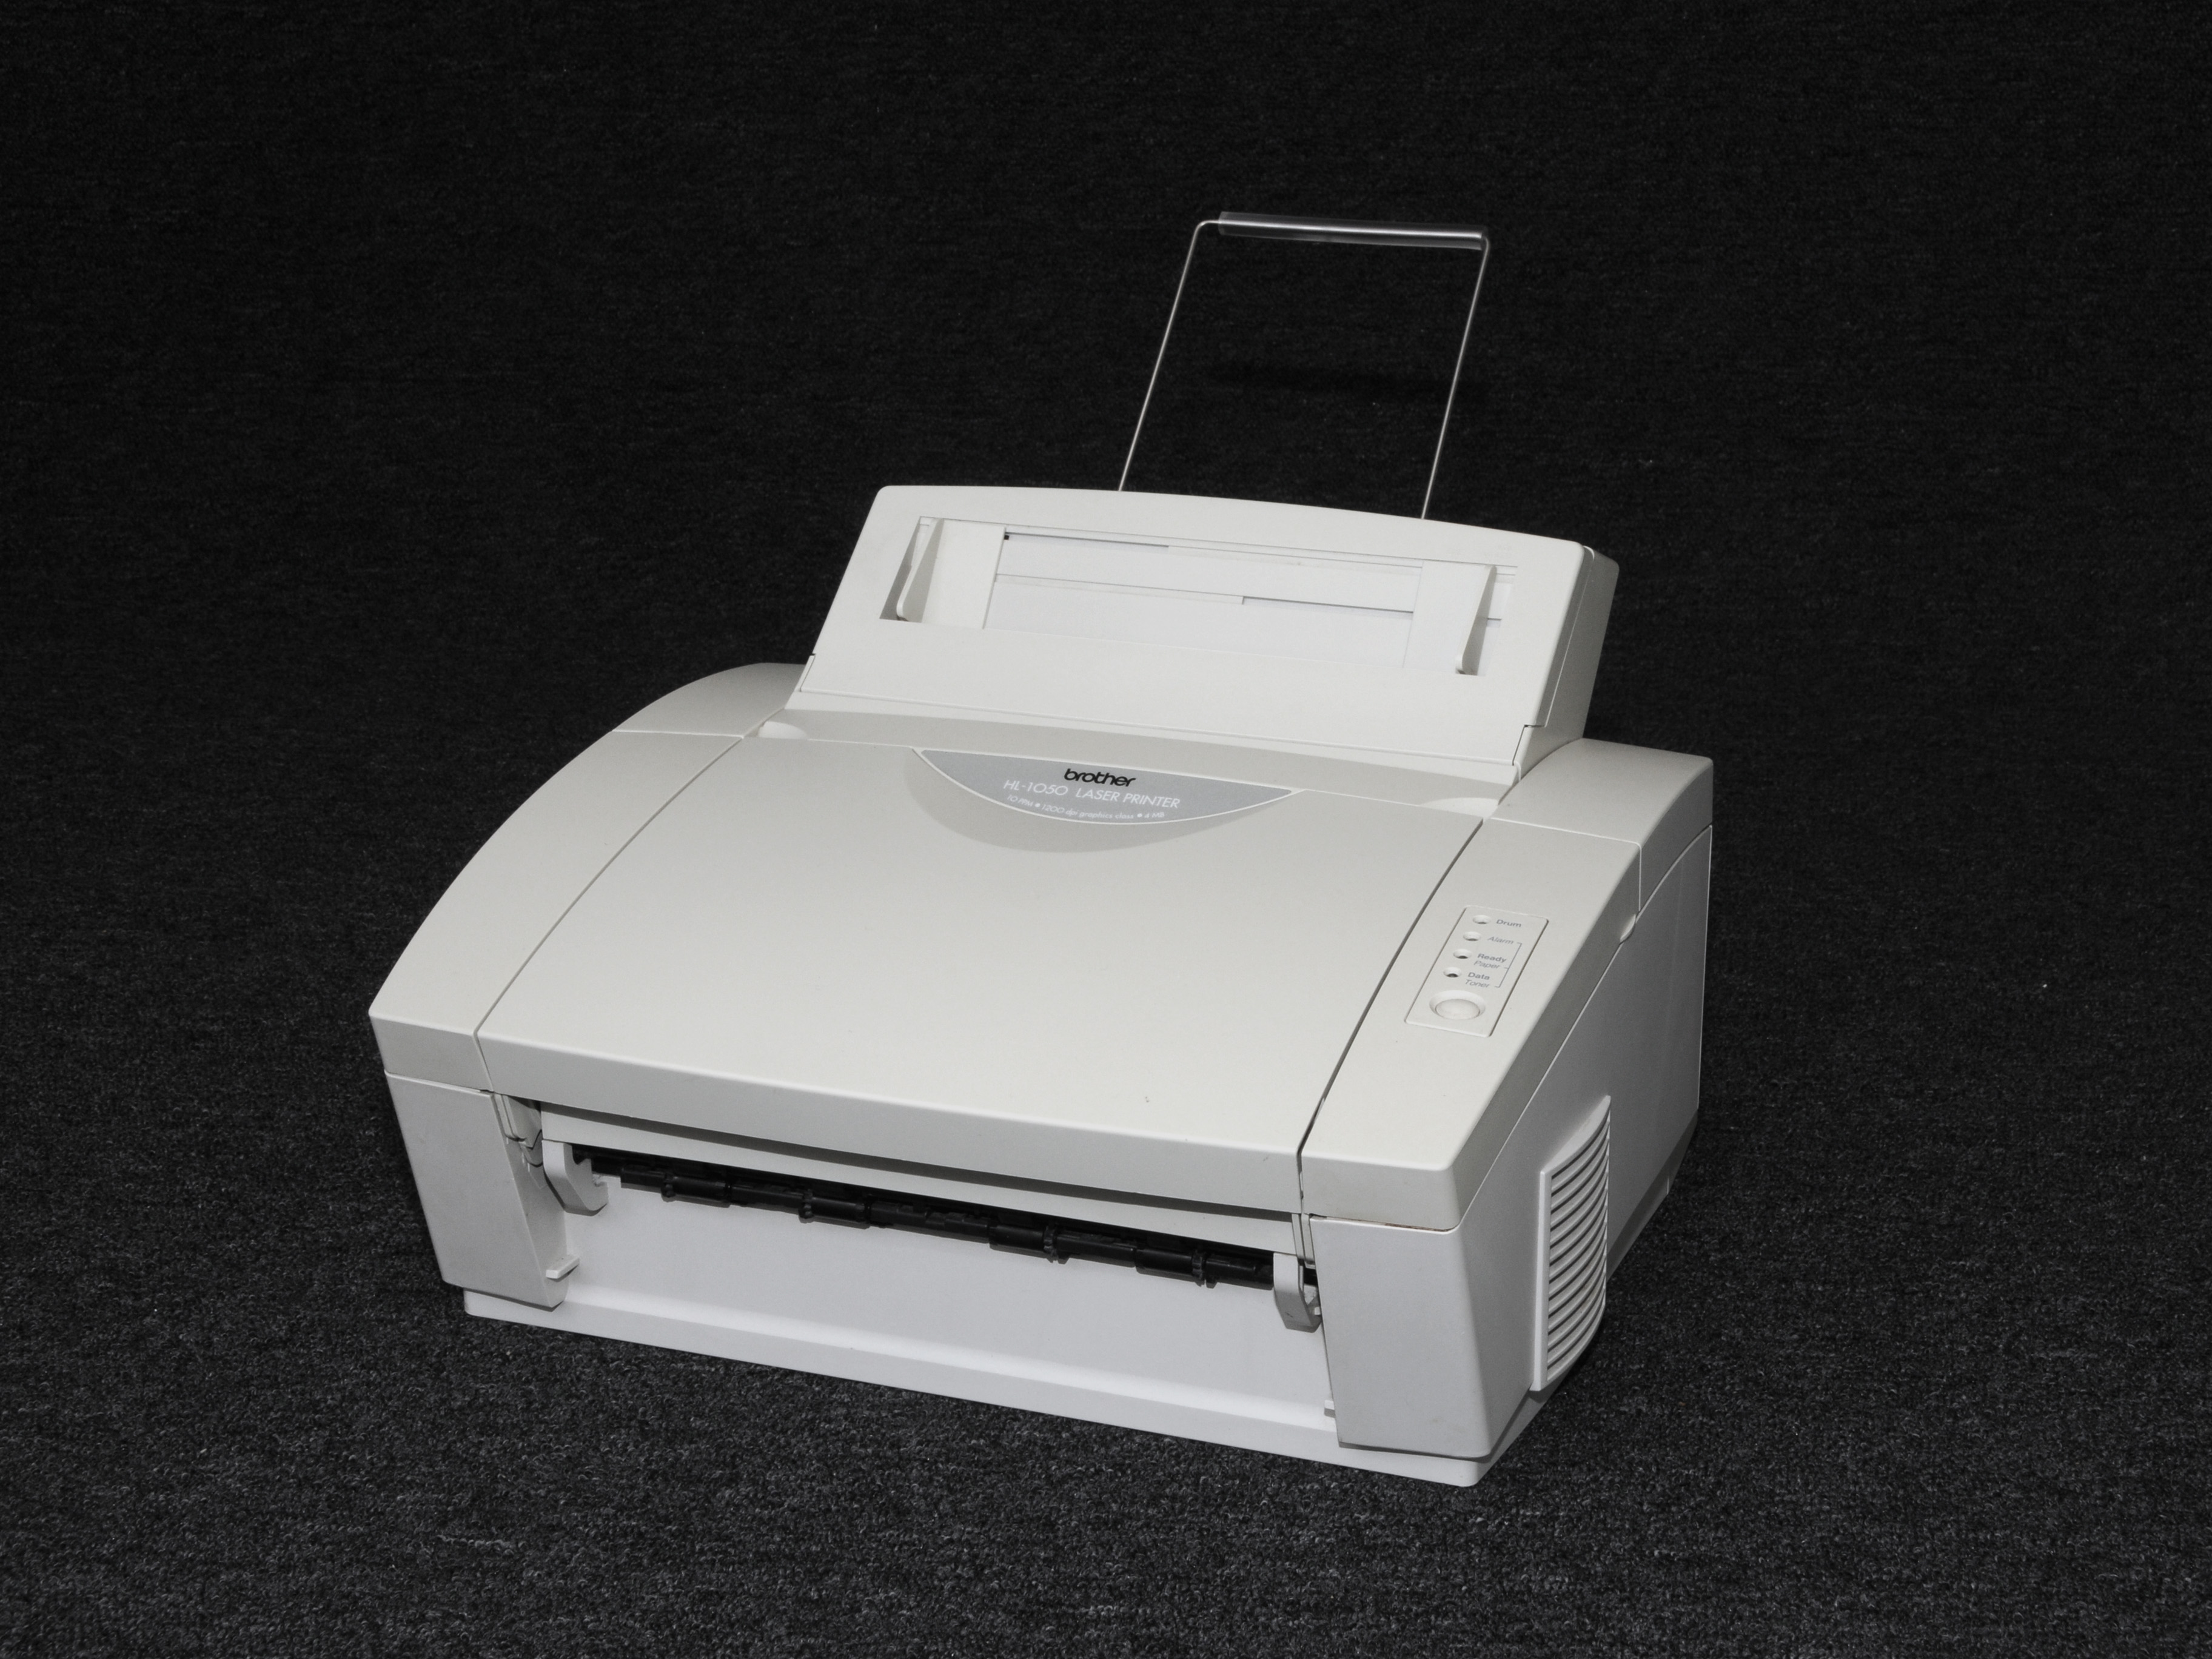 BROTHER HL-1050 PRINTER DRIVERS FOR WINDOWS 10